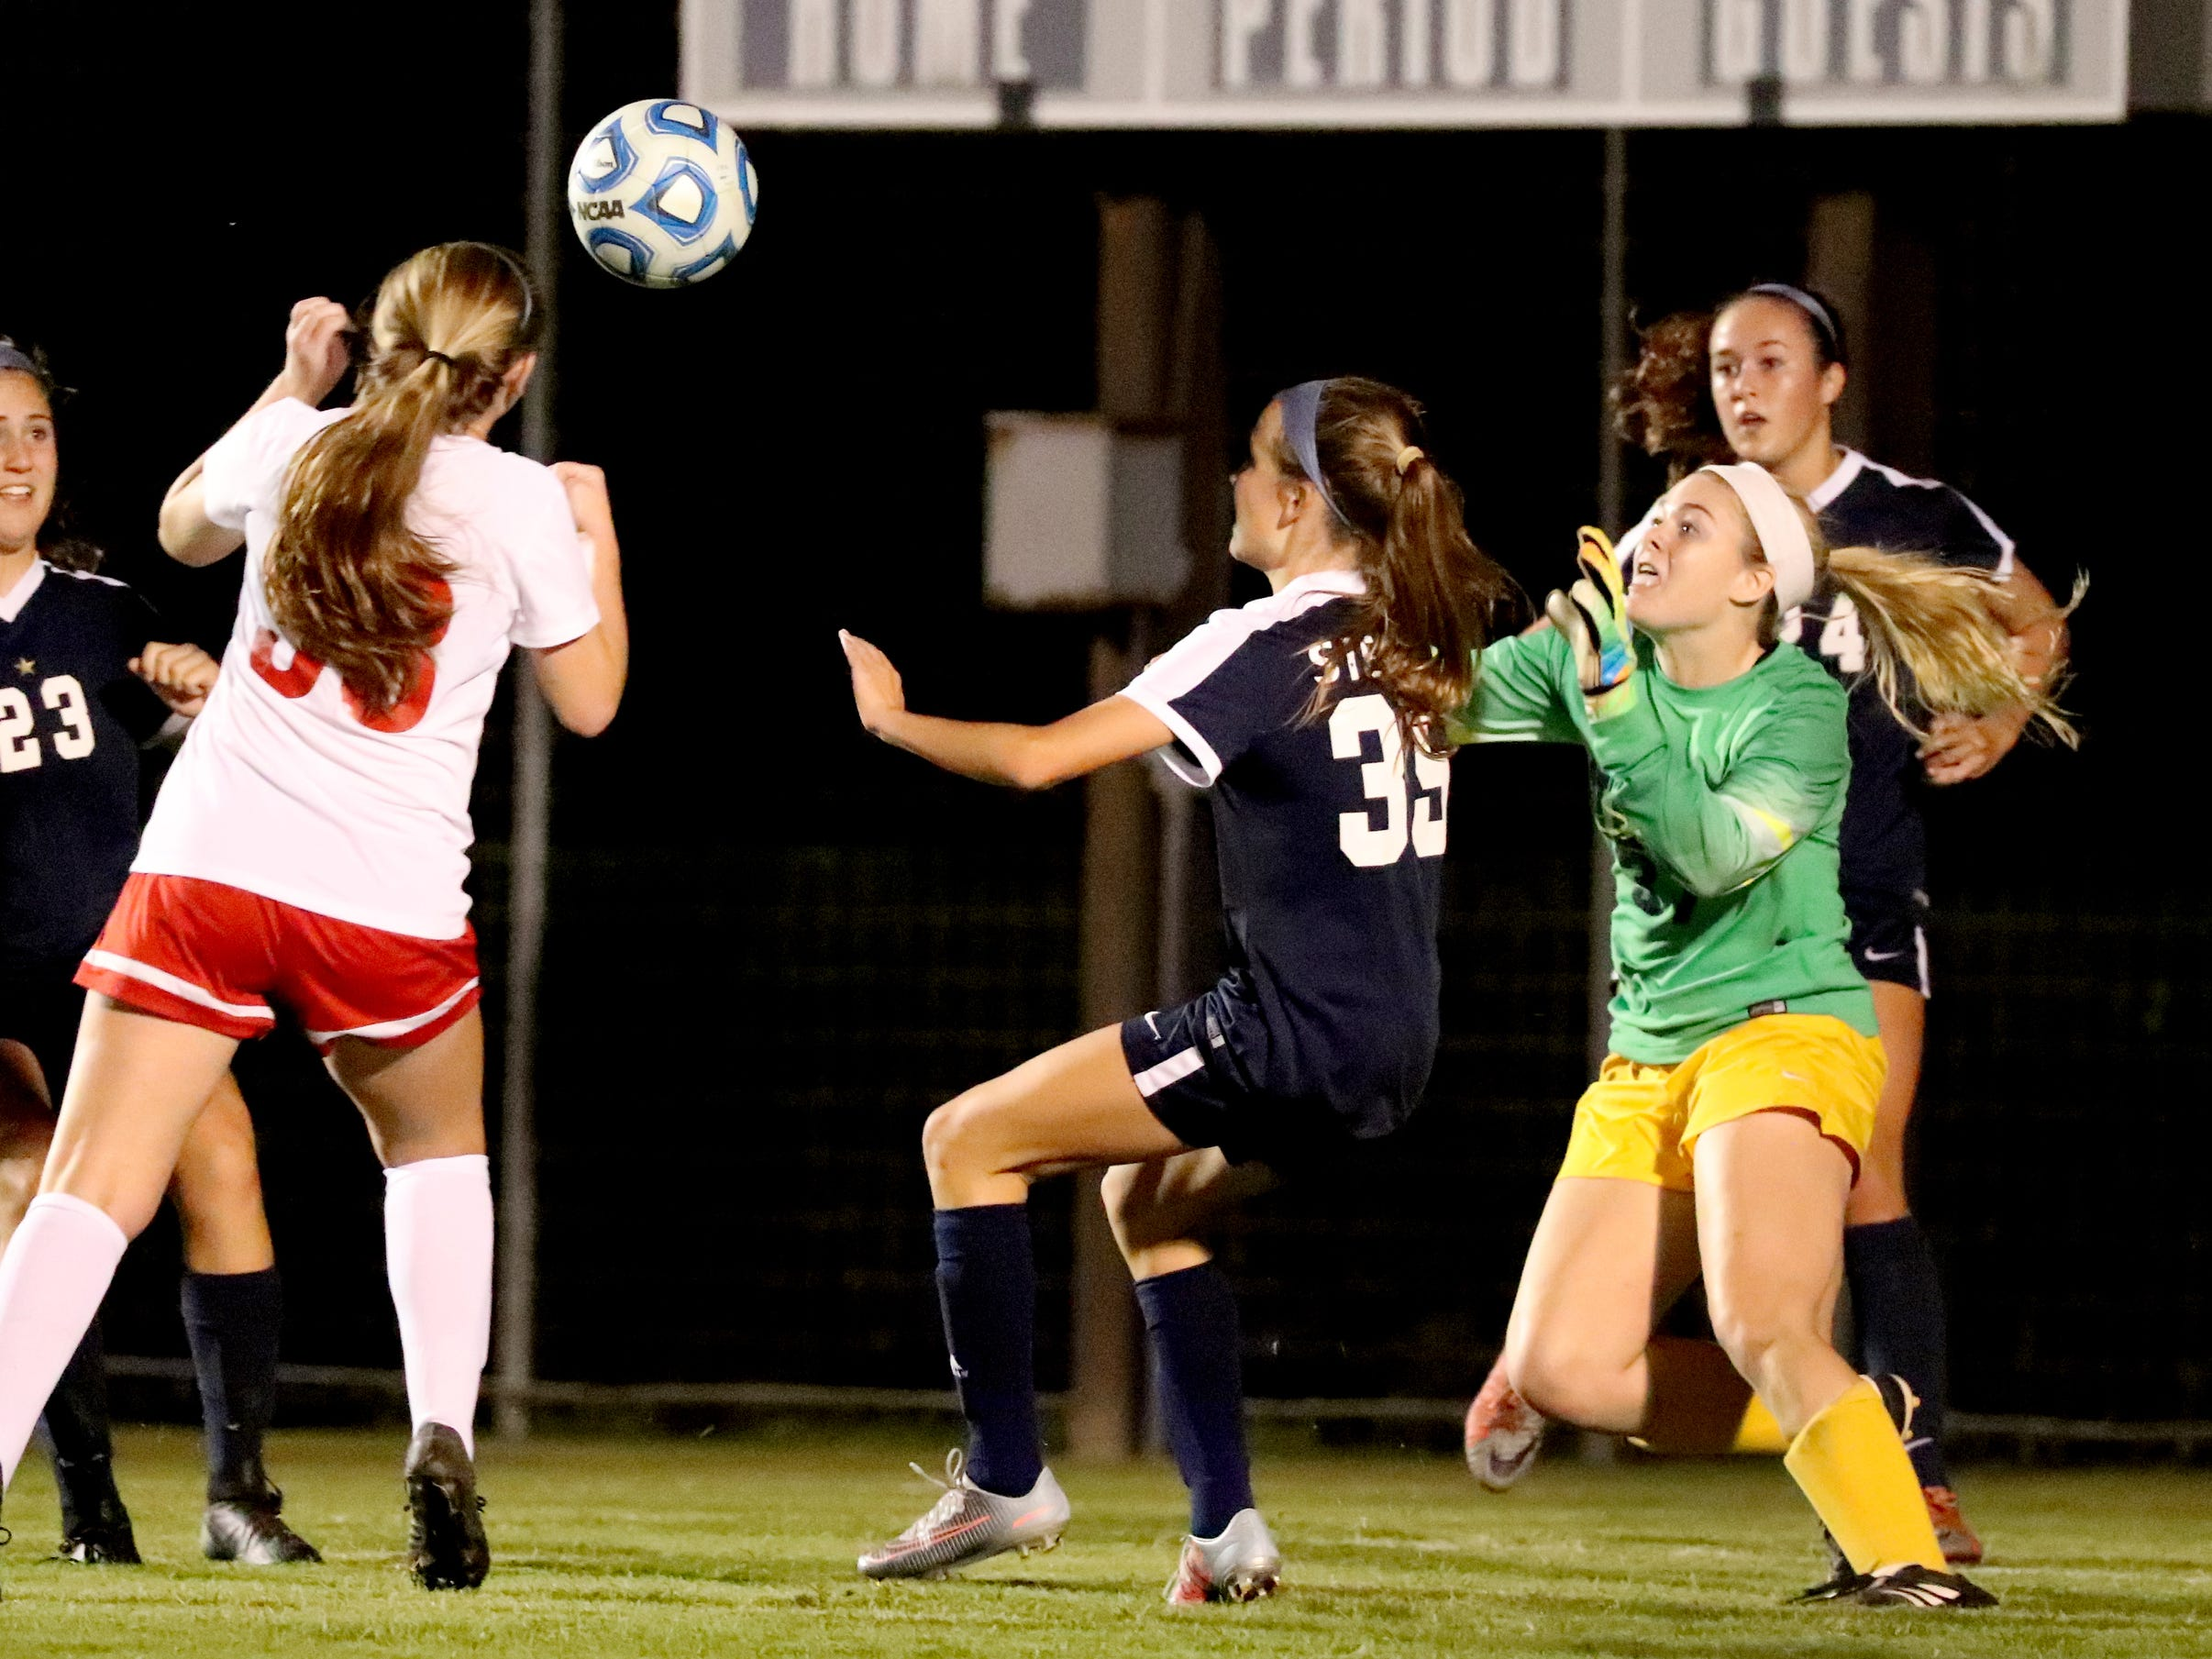 Siegel's keeper Courtney Donnelly (37) moves in to try and make a save against Oakland in the semifinals 7-AAA Soccer Tournament against Oakland, on Tuesday,  Oct. 09, 2018 at the Siegel Soccer Complex.